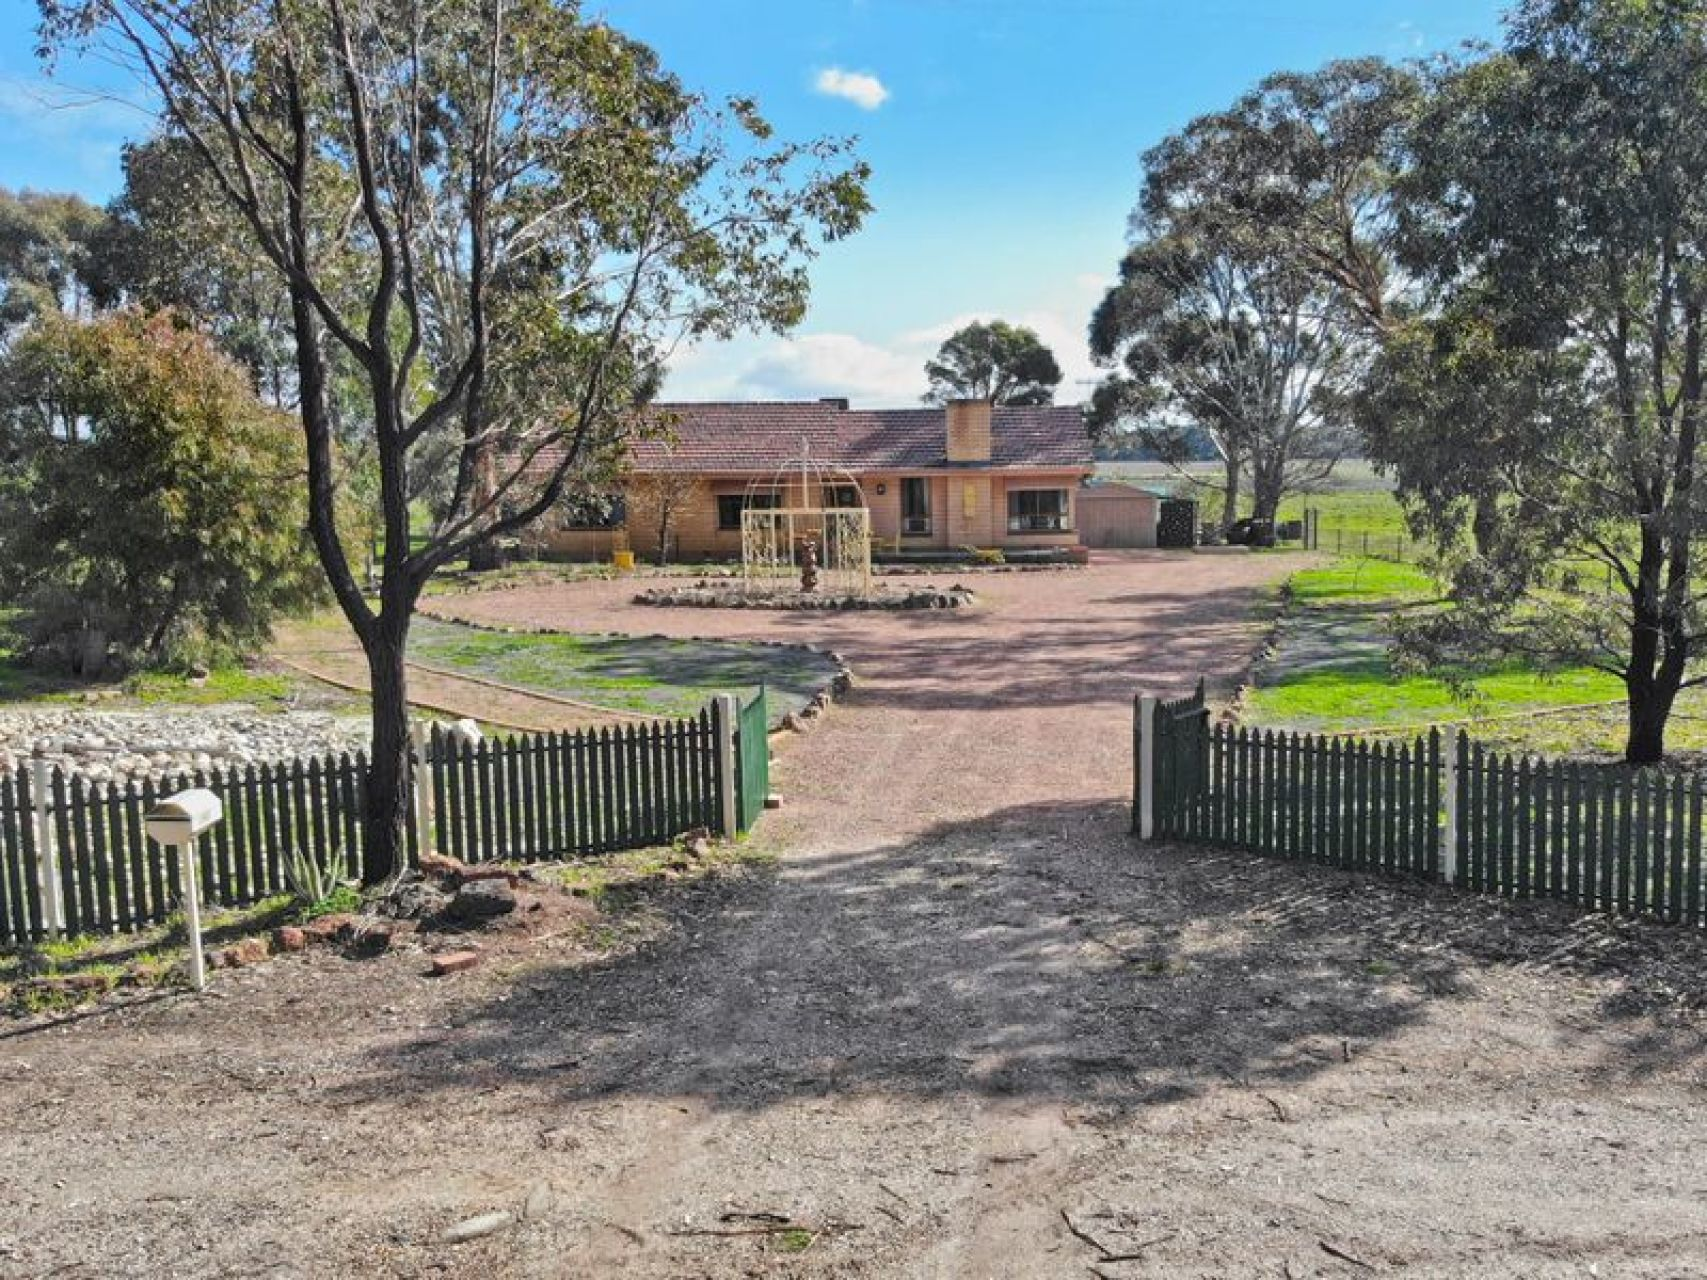 190 Dunolly - Avoca Road Dunolly